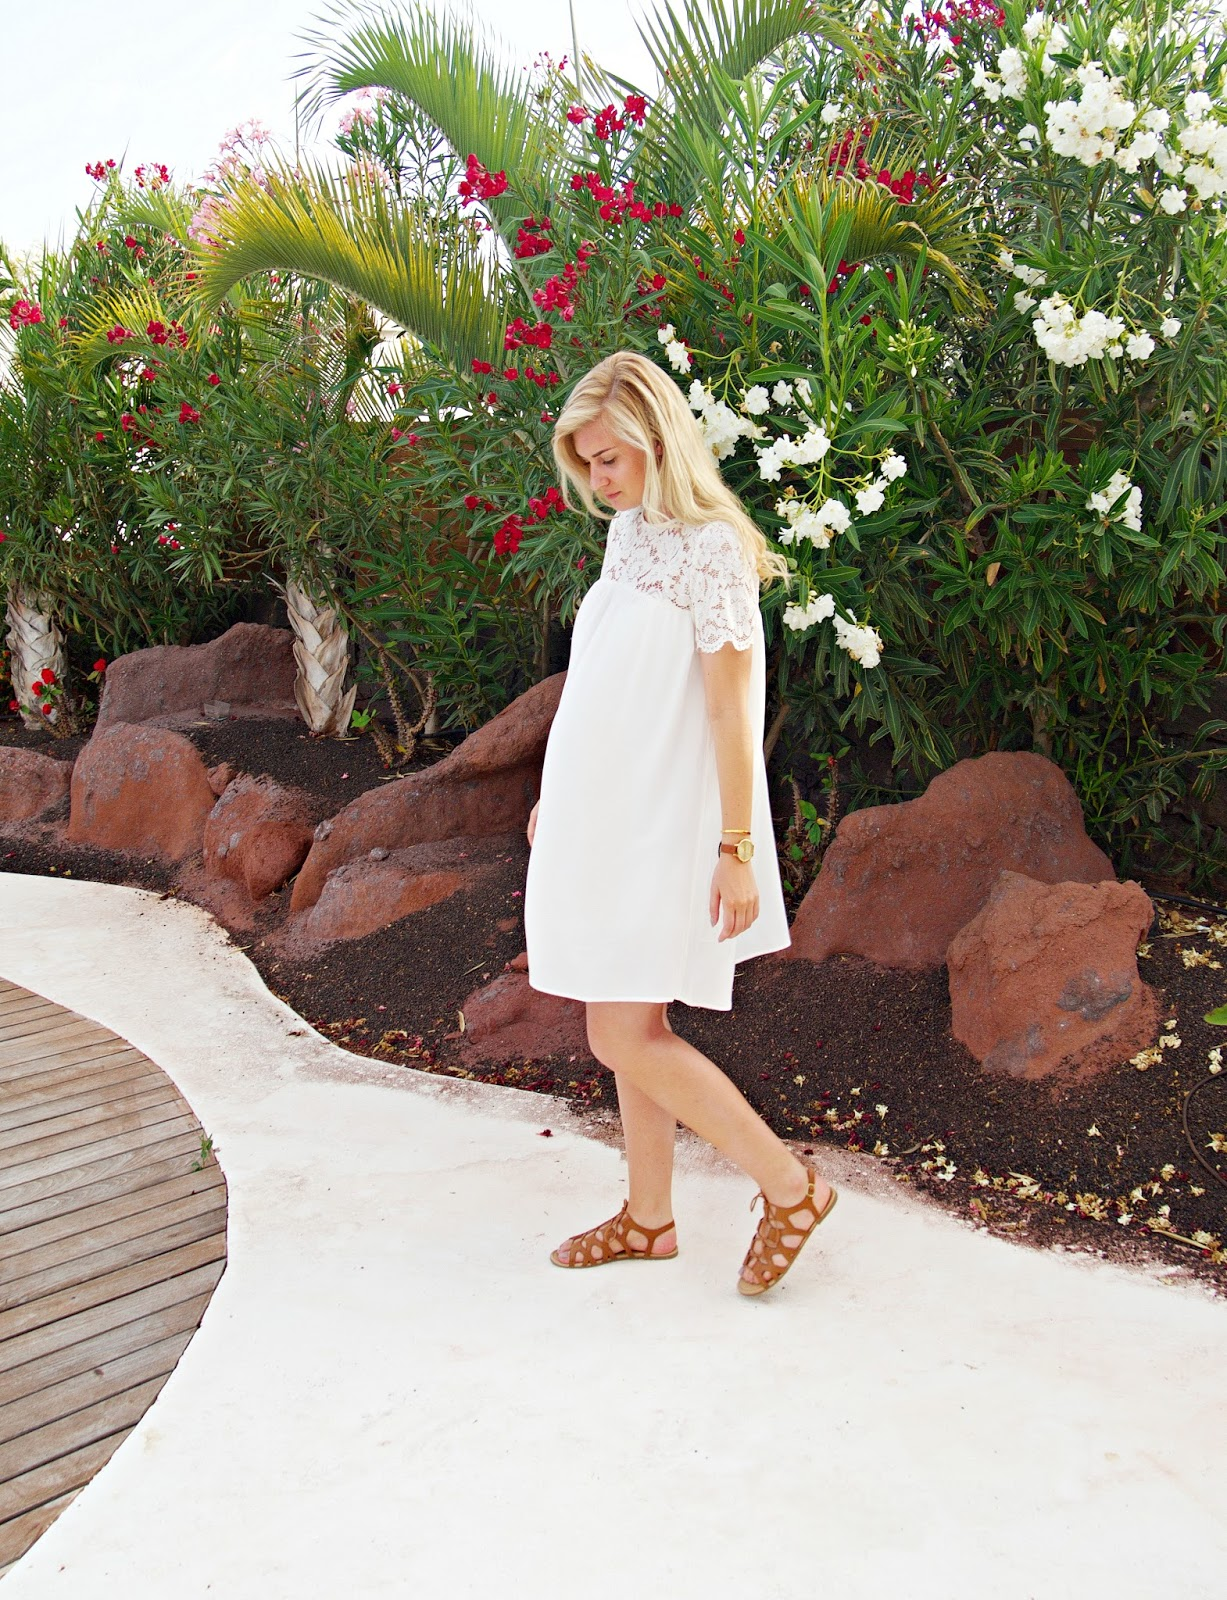 Summer Style white lace dress